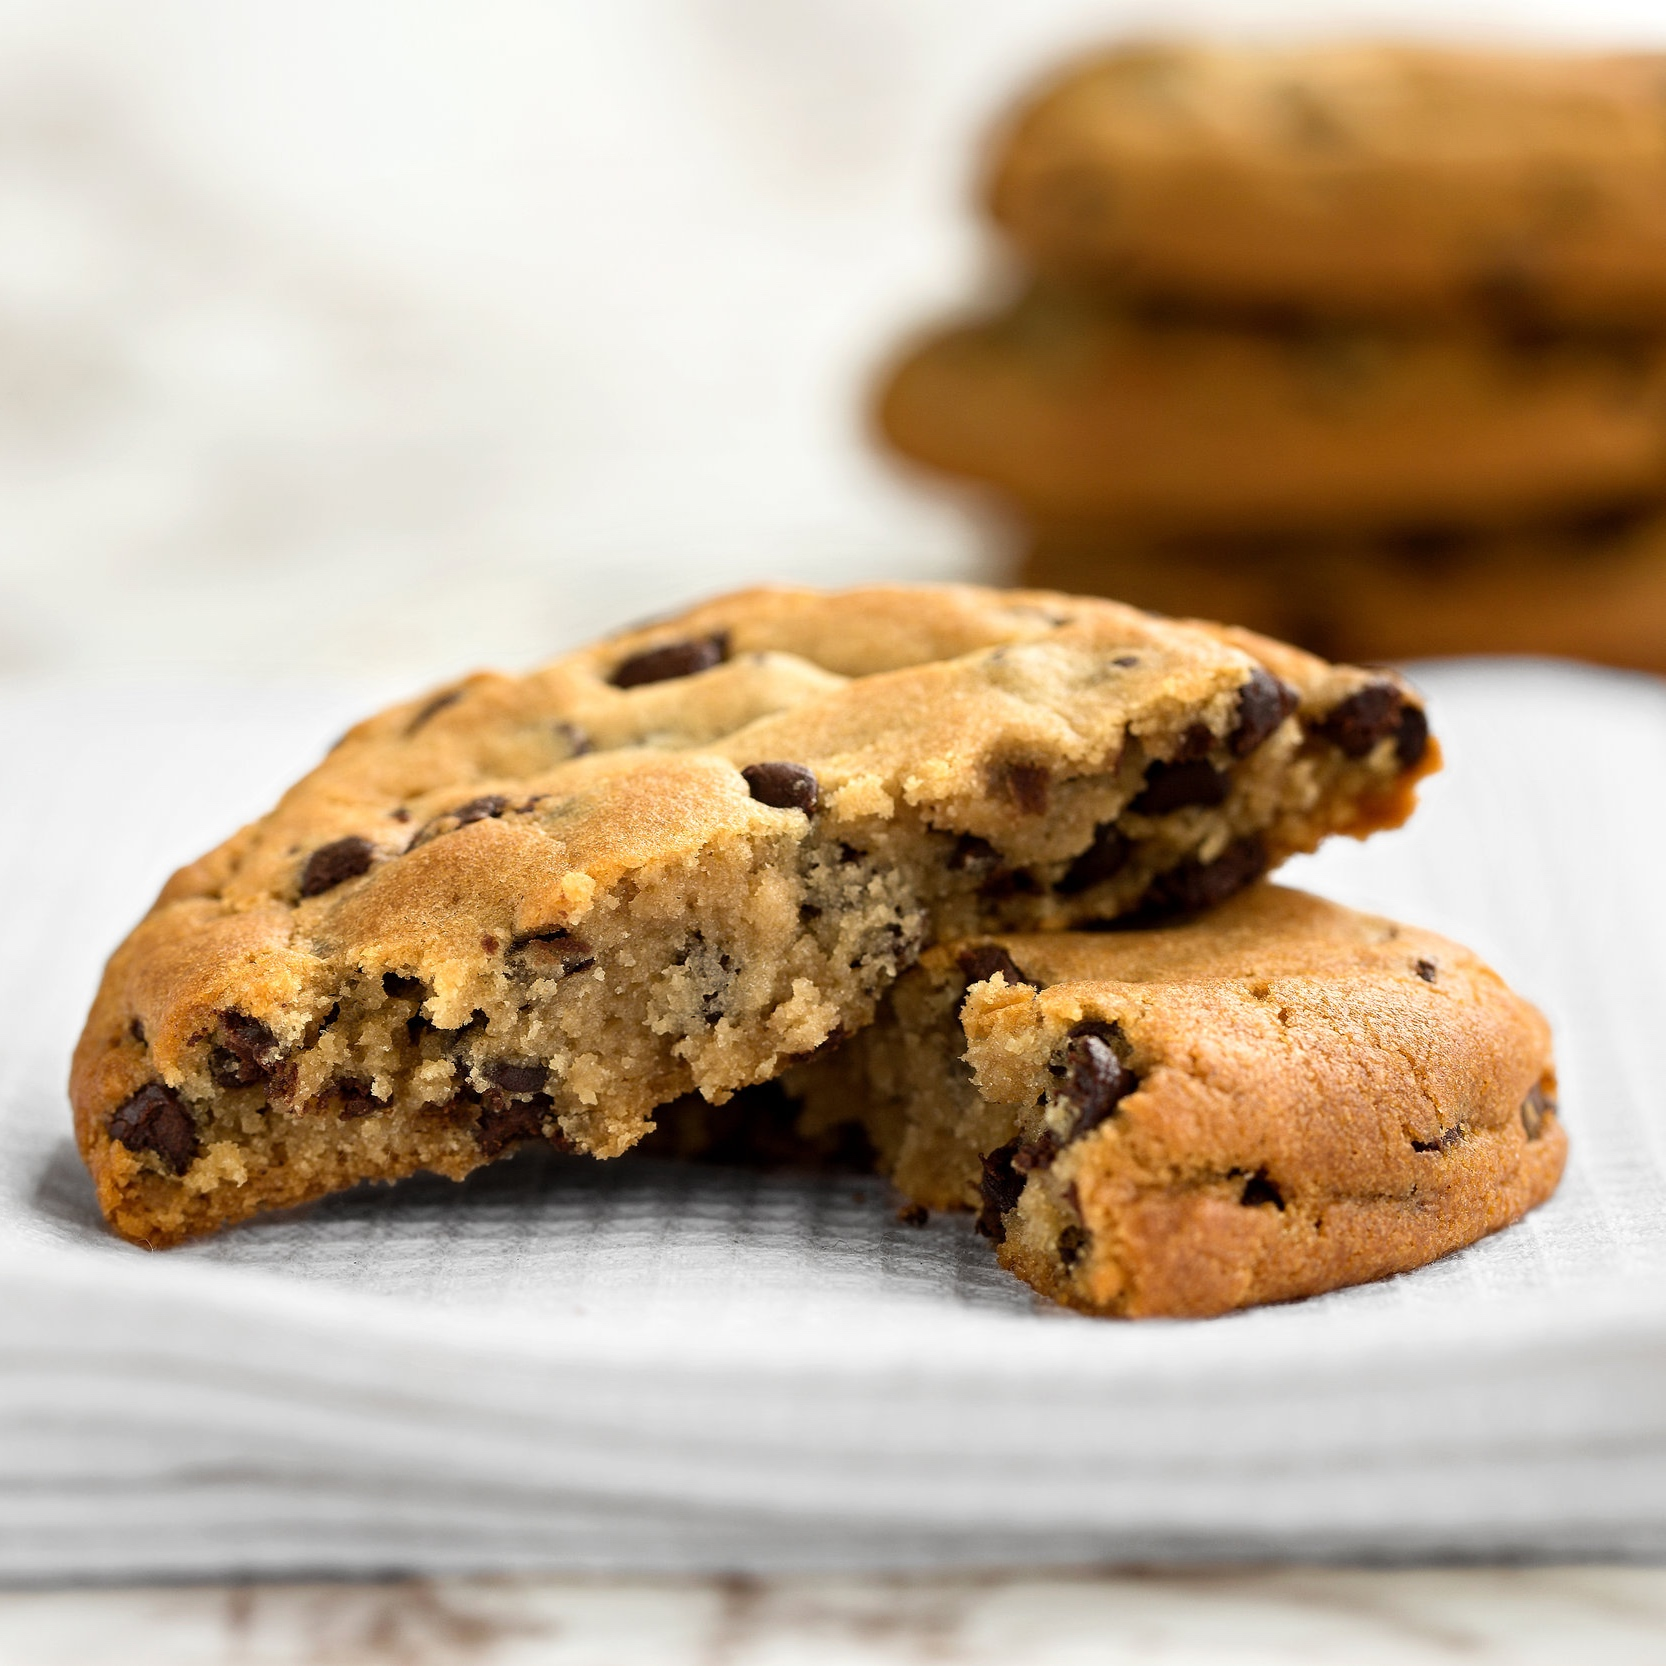 Chocolate Chip Cookies - Soft and chewy chocolate chip cookies.